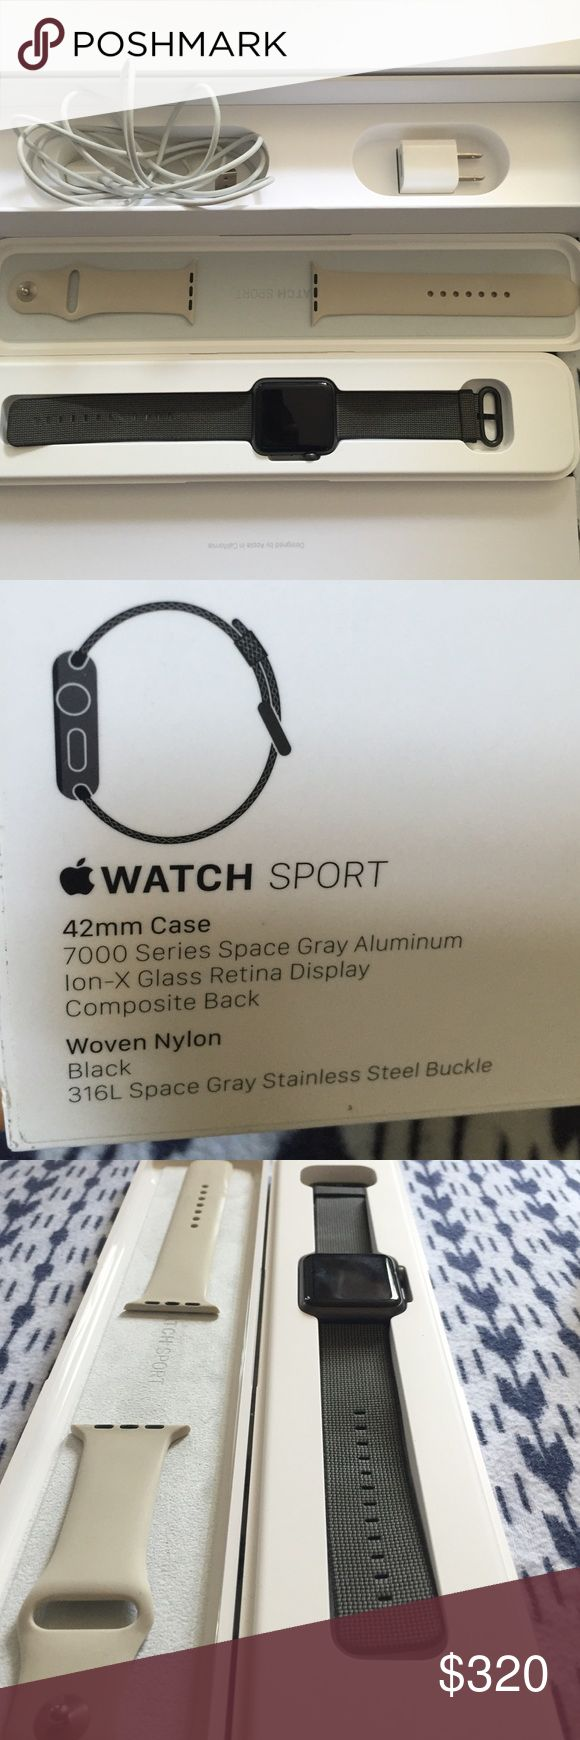 Apple Watch 42 mm case, ⌚️BLACK APPLE WATCH⌚️ plus an extra white sport watch band included:     Total: $310.00 *Price Negotiable* Apple Accessories Watches